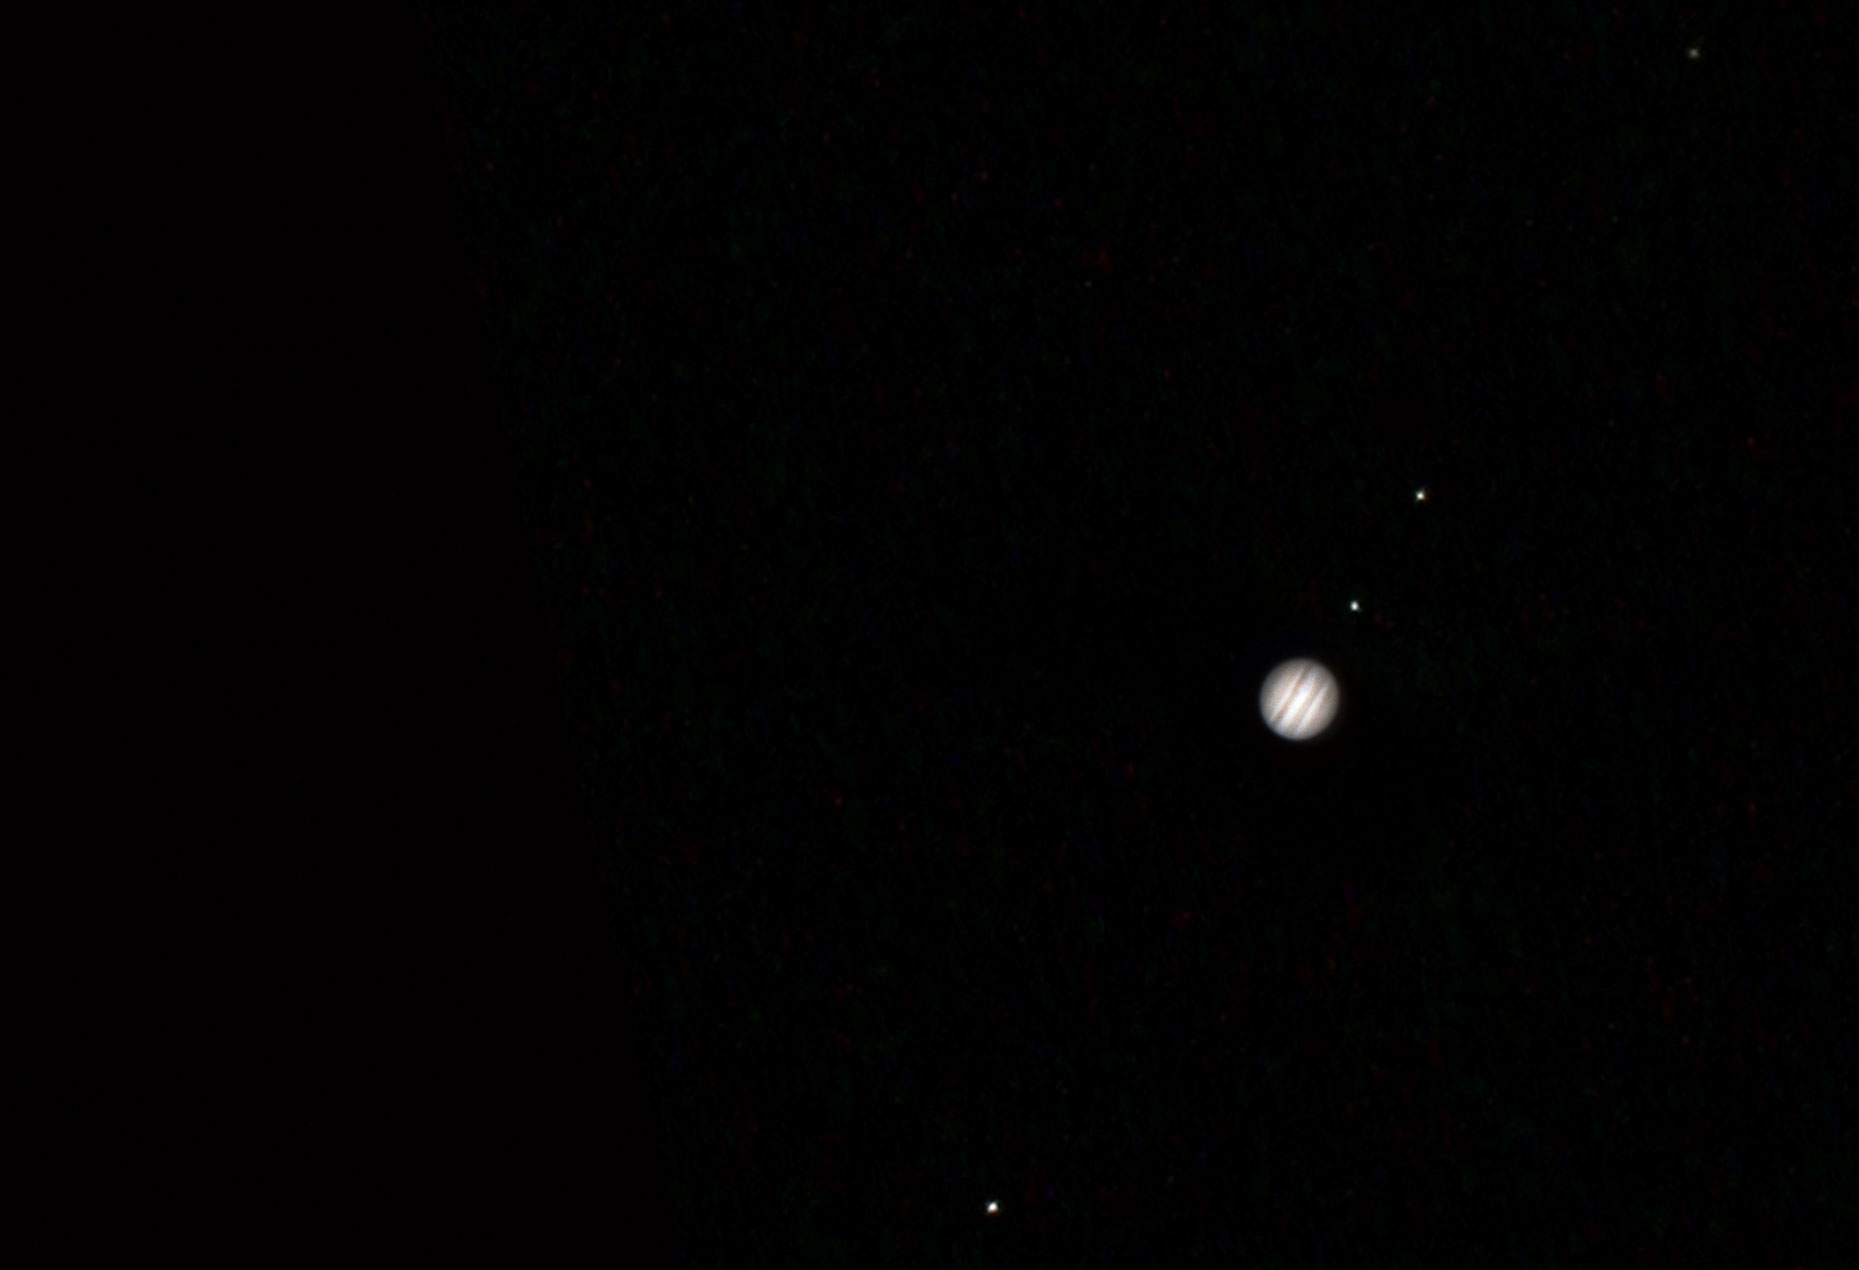 This was the first time I'd ever seen Jupiter in the sky, and boy was I impressed to see 4 moons!